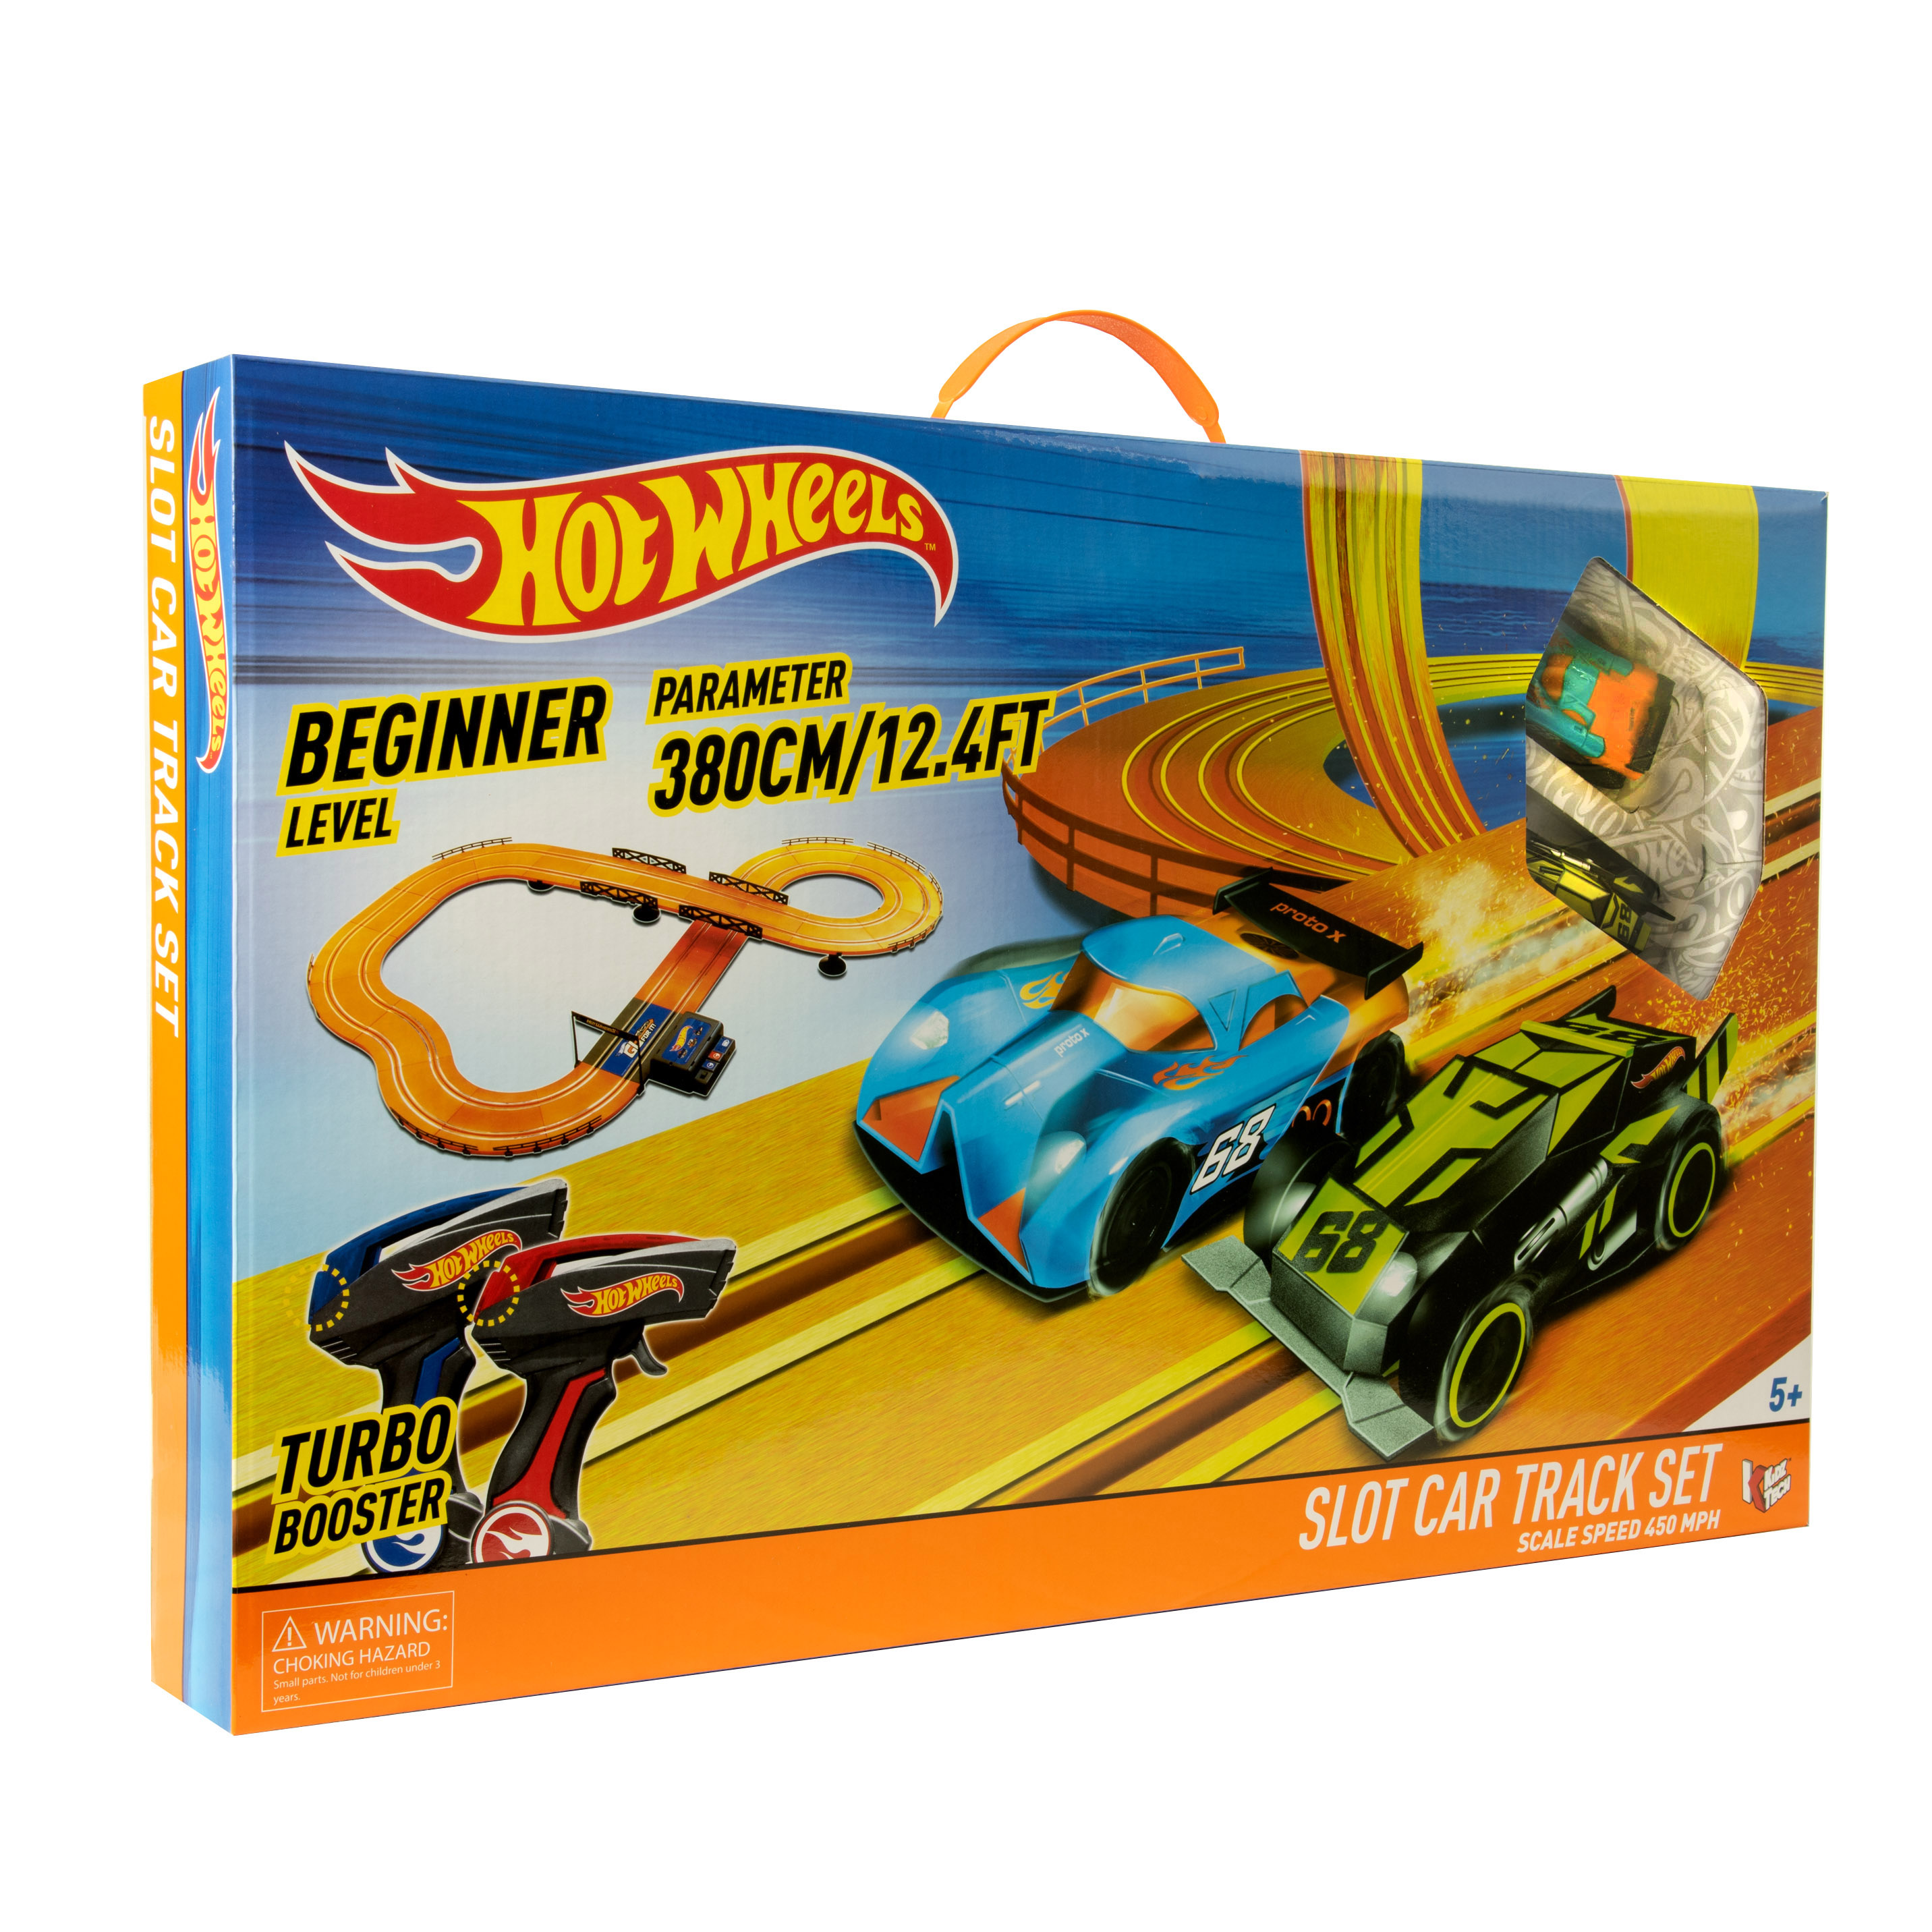 Hot Wheels Battery Operated 12 4 Slot Car Track Racing Set With 2 Vehicles